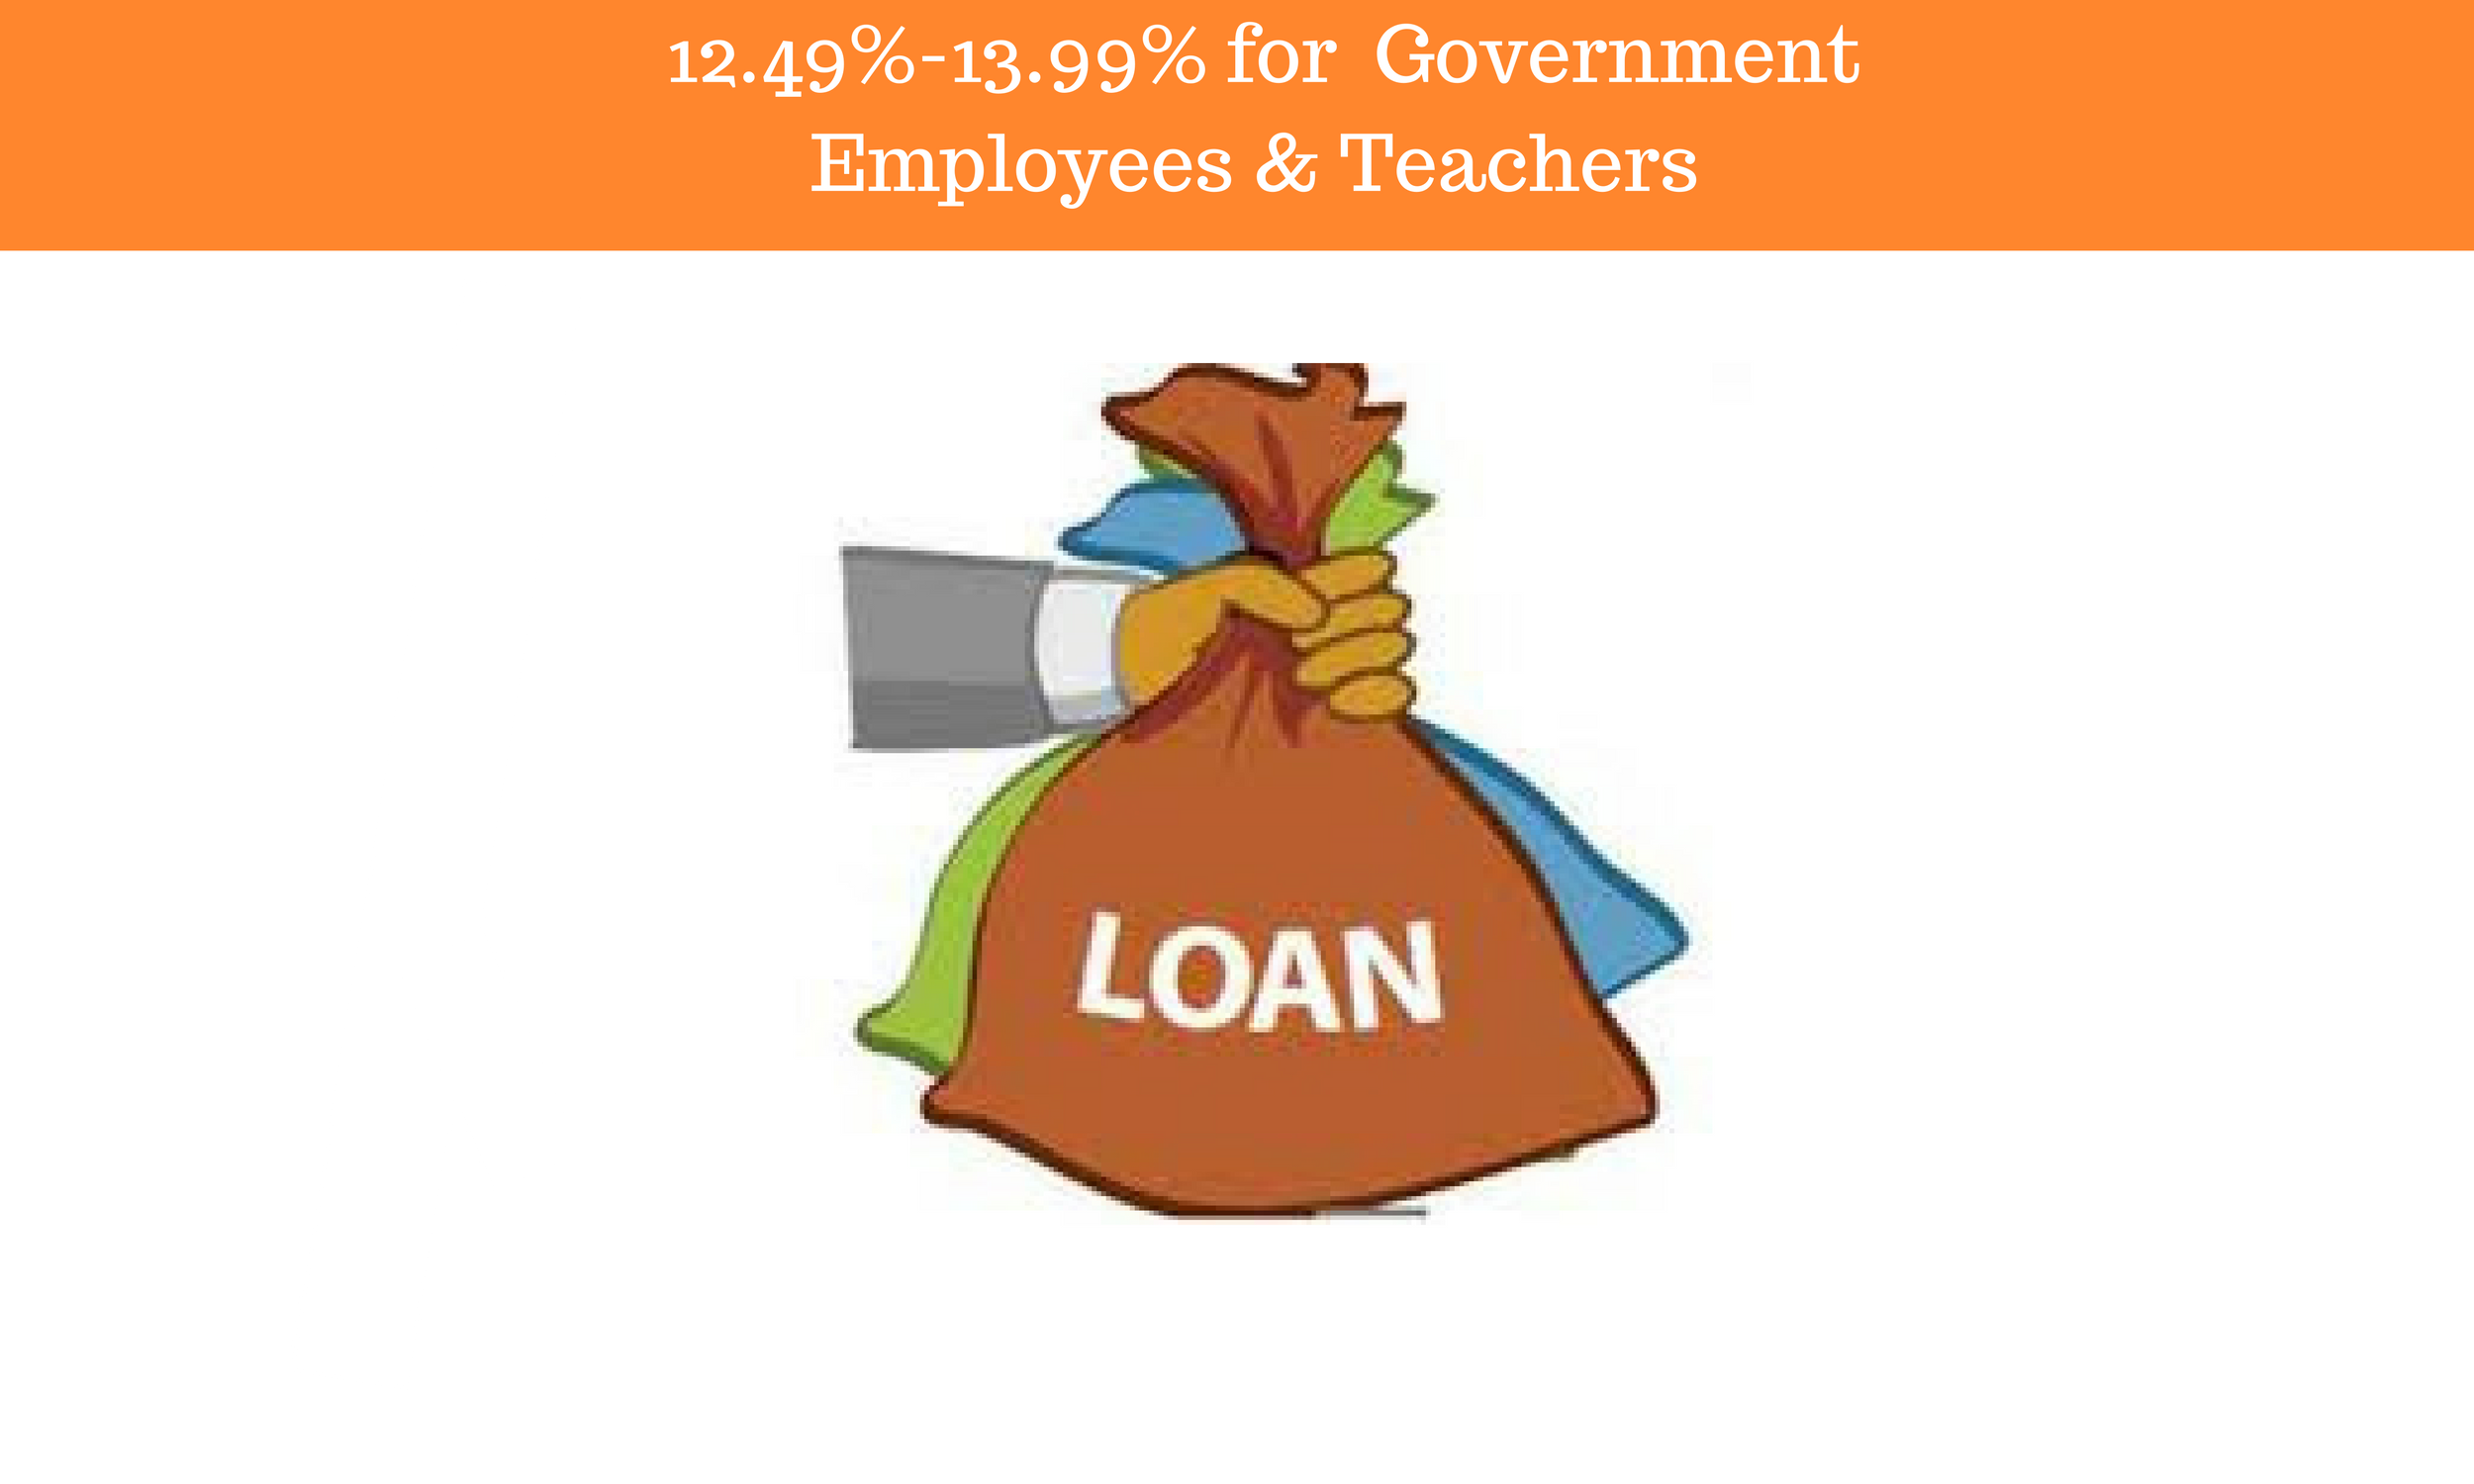 12.49% - 13.99% rate for Central & State Government Employees & Teachers